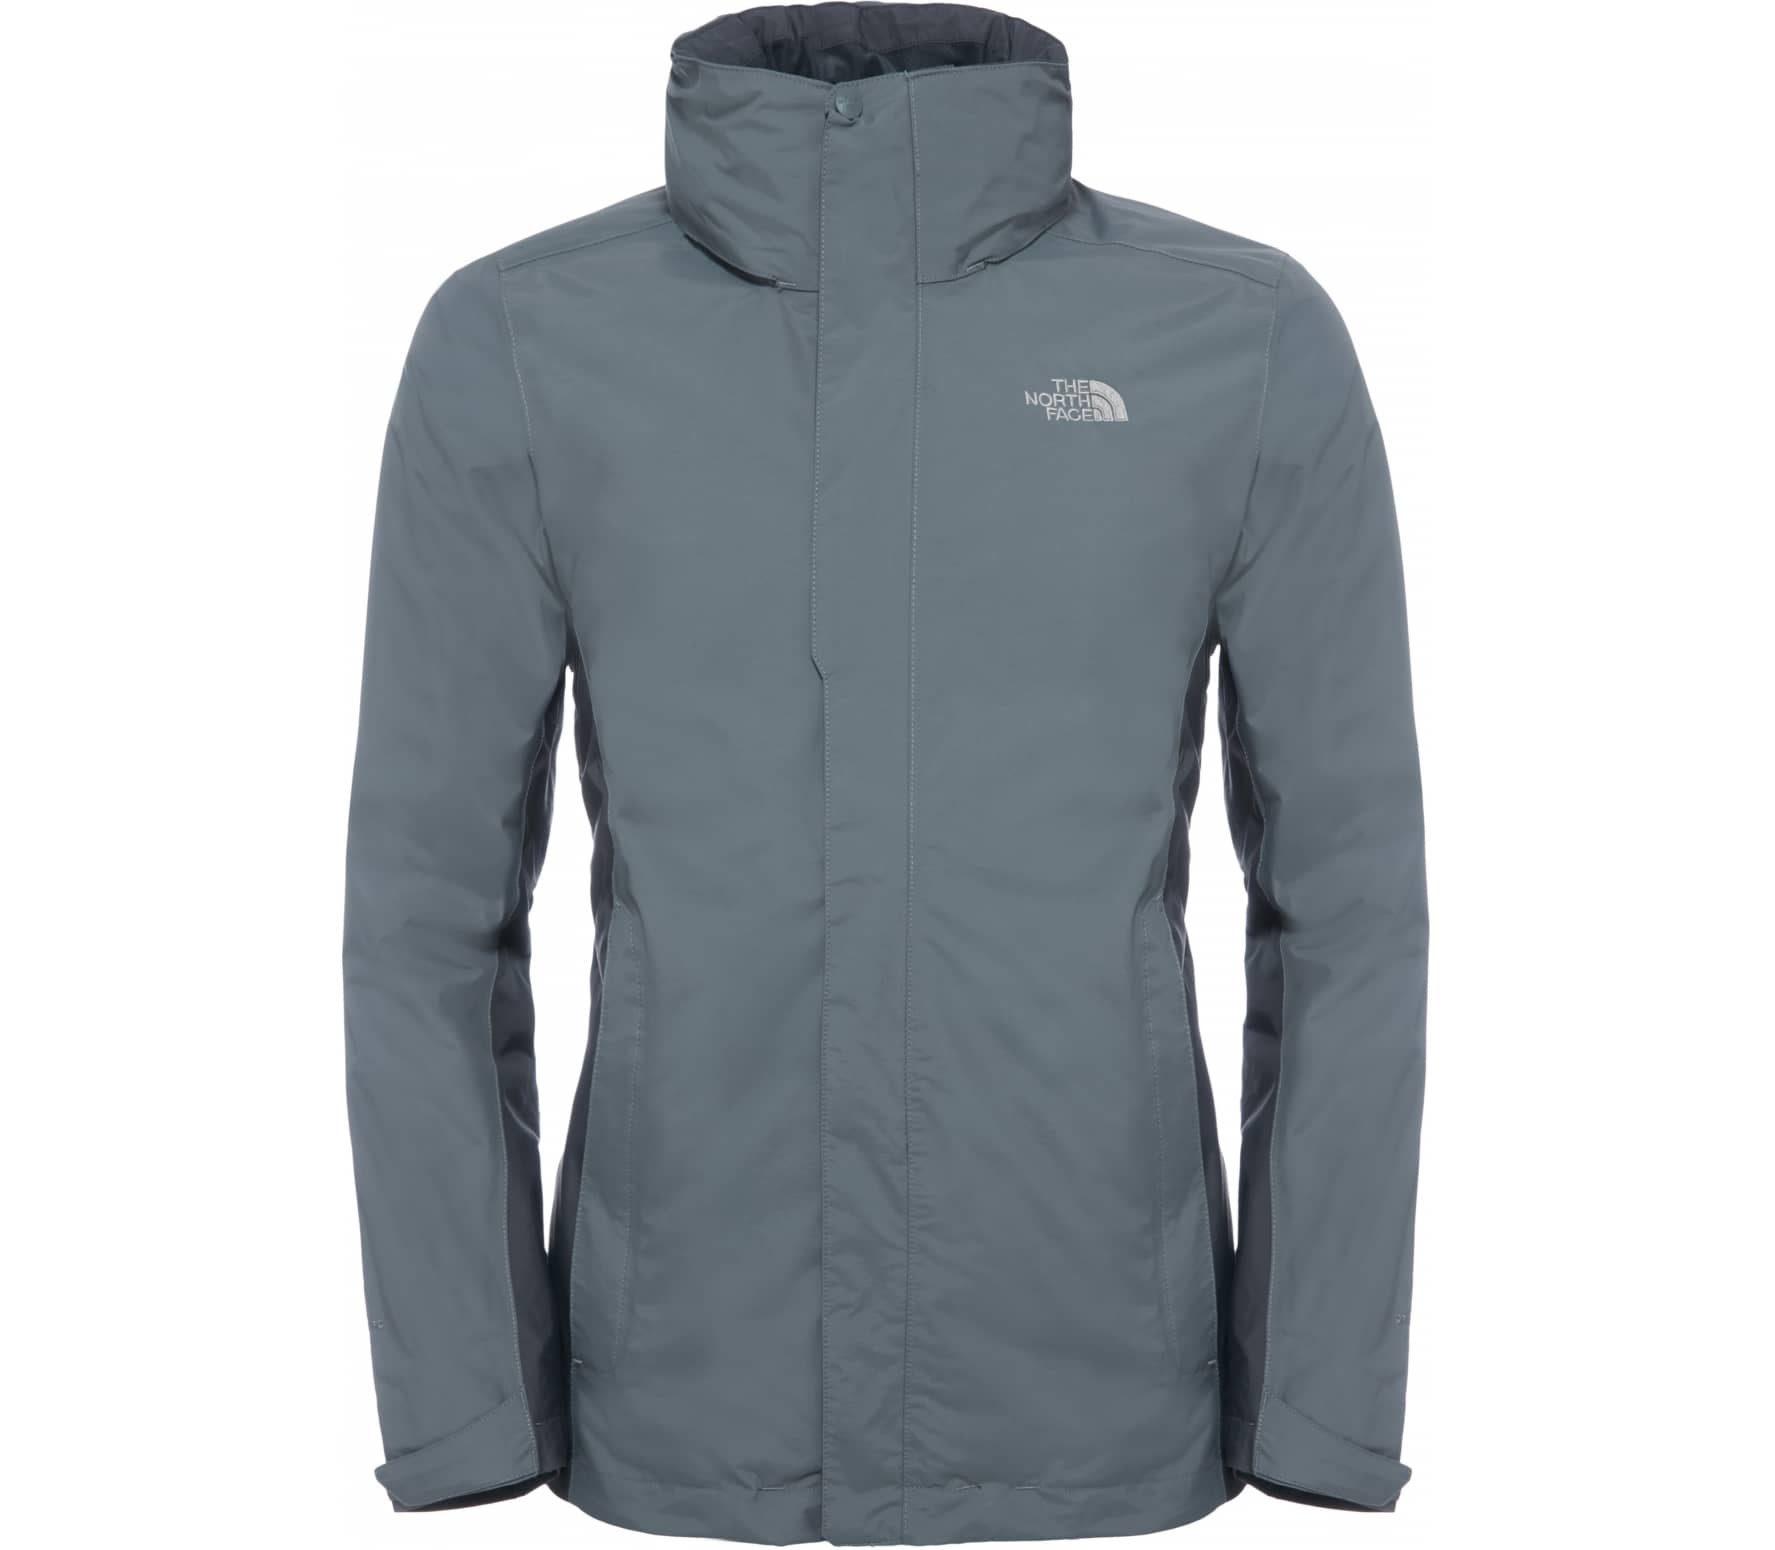 d50be7f235e6 The North Face - Evolution II Triclimate® men s double jacket (grey ...